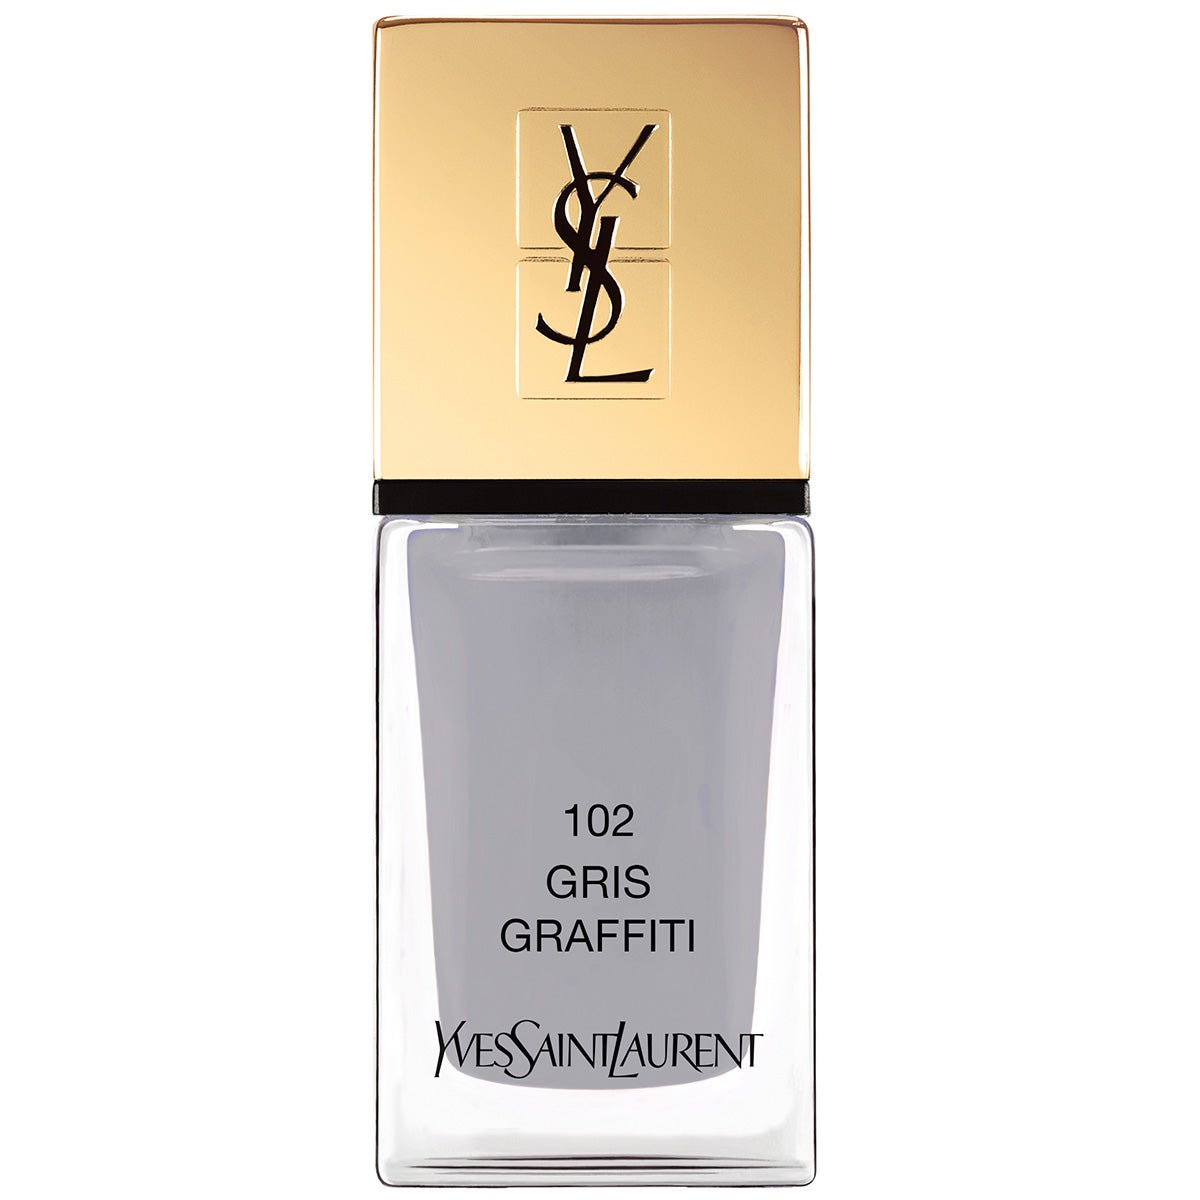 Yves Saint Laurent La Laque Couture 102 Gris Graffiti - Urban Escape Collection